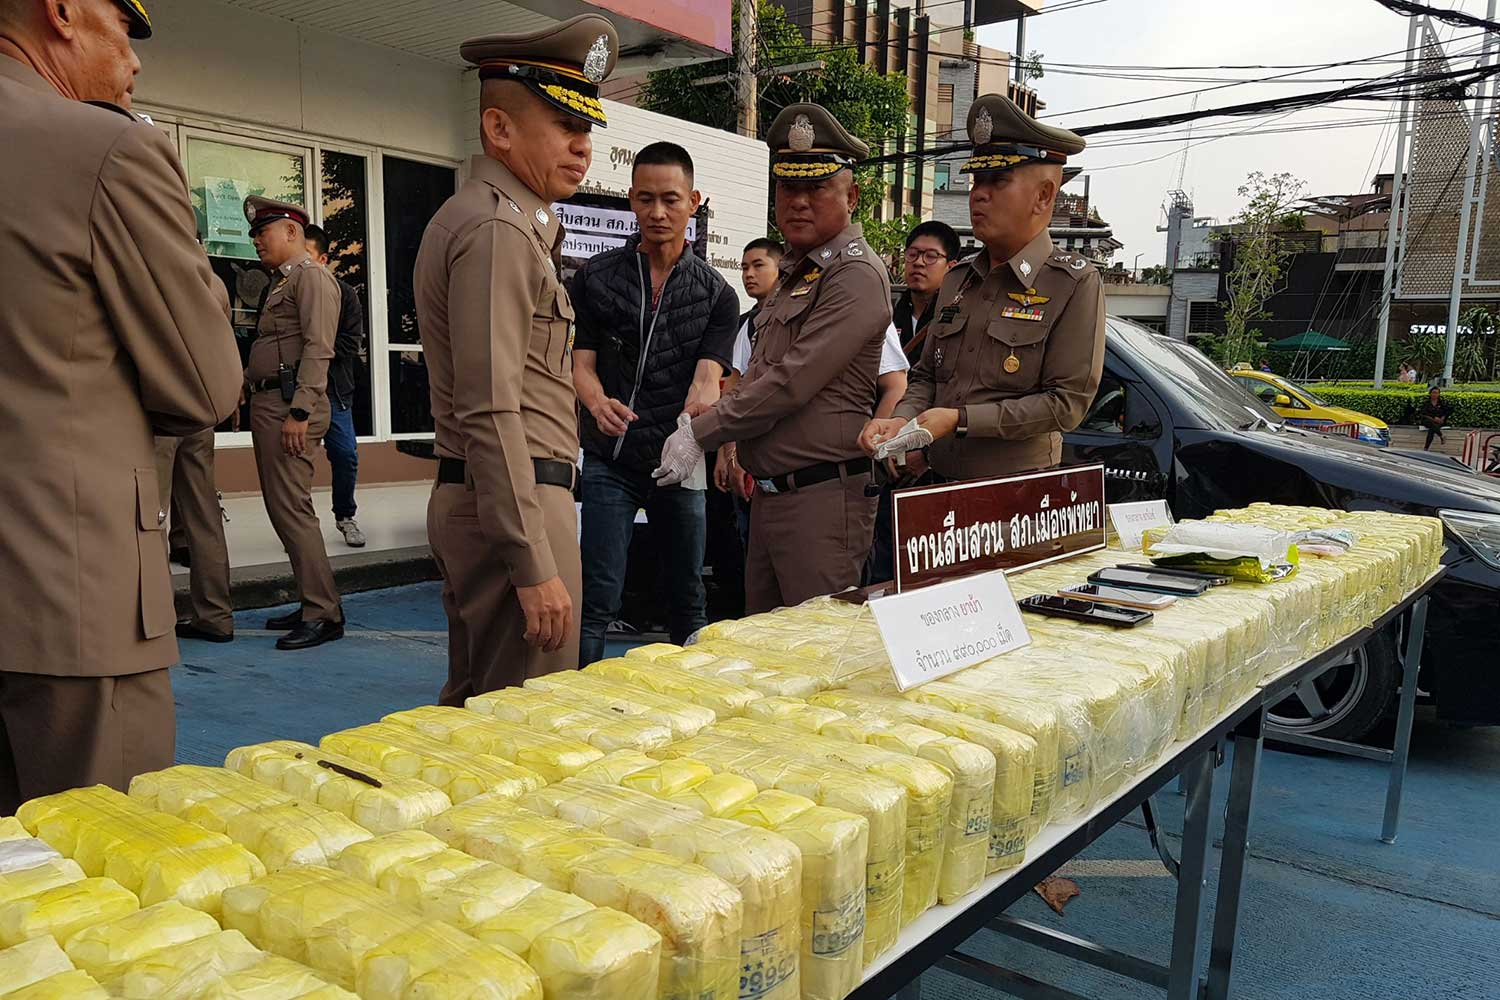 Pol Lt Gen Montri Yimyaem, centre, commander of the Provincial Police Region 2, and other senior police look at the packs of speed pills and crystal methamphetamine seized from five suspects in Chon Buri and three other provinces, prior to the news conference on Tuesday evening. (Photo by Chaiyot Pupattanapong)